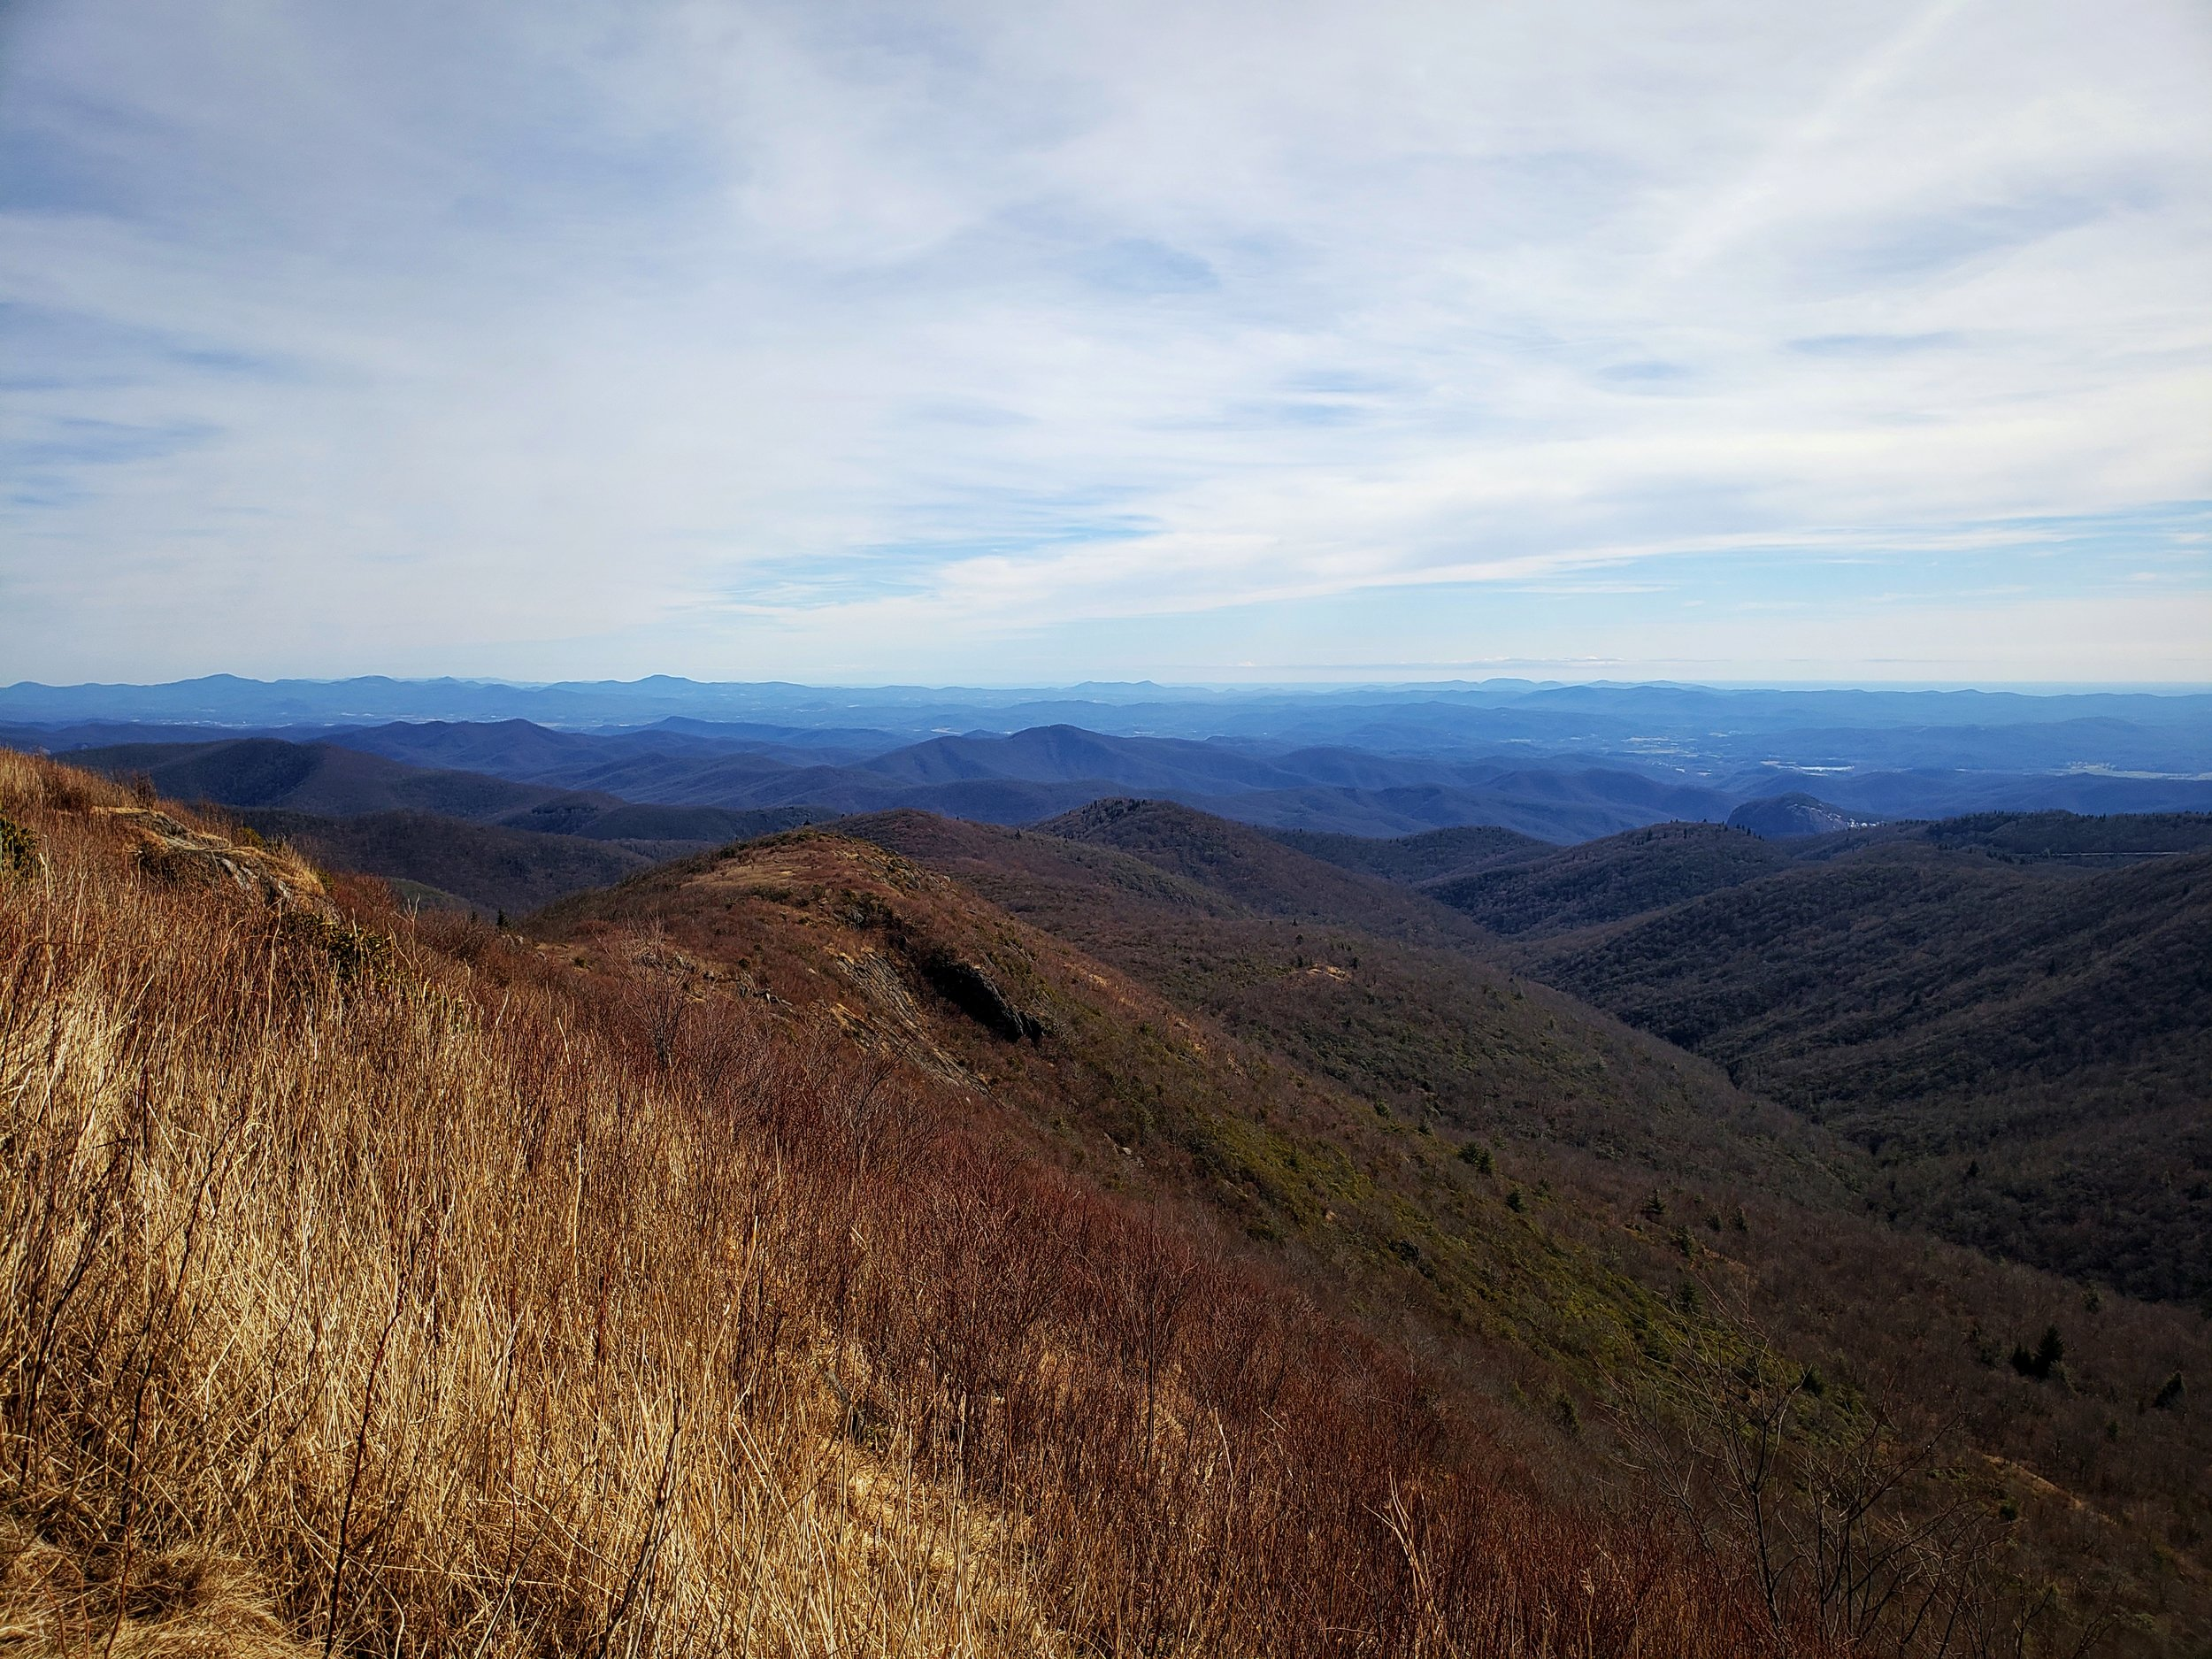 The views along the Blue Ridge Parkway are beautiful, and remarkably blue!